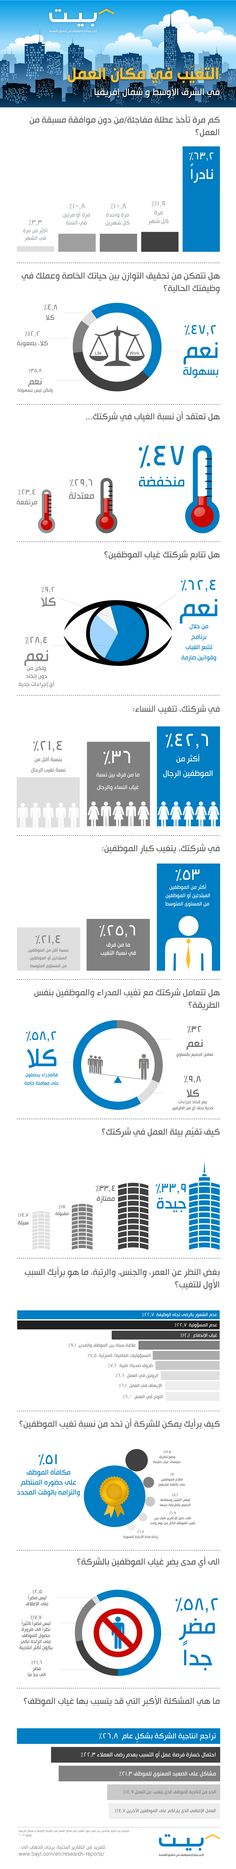 Absenteeism at work in Middle East & North Africa (Arabic) http://www.bayt.com/ar/research-report-13862/